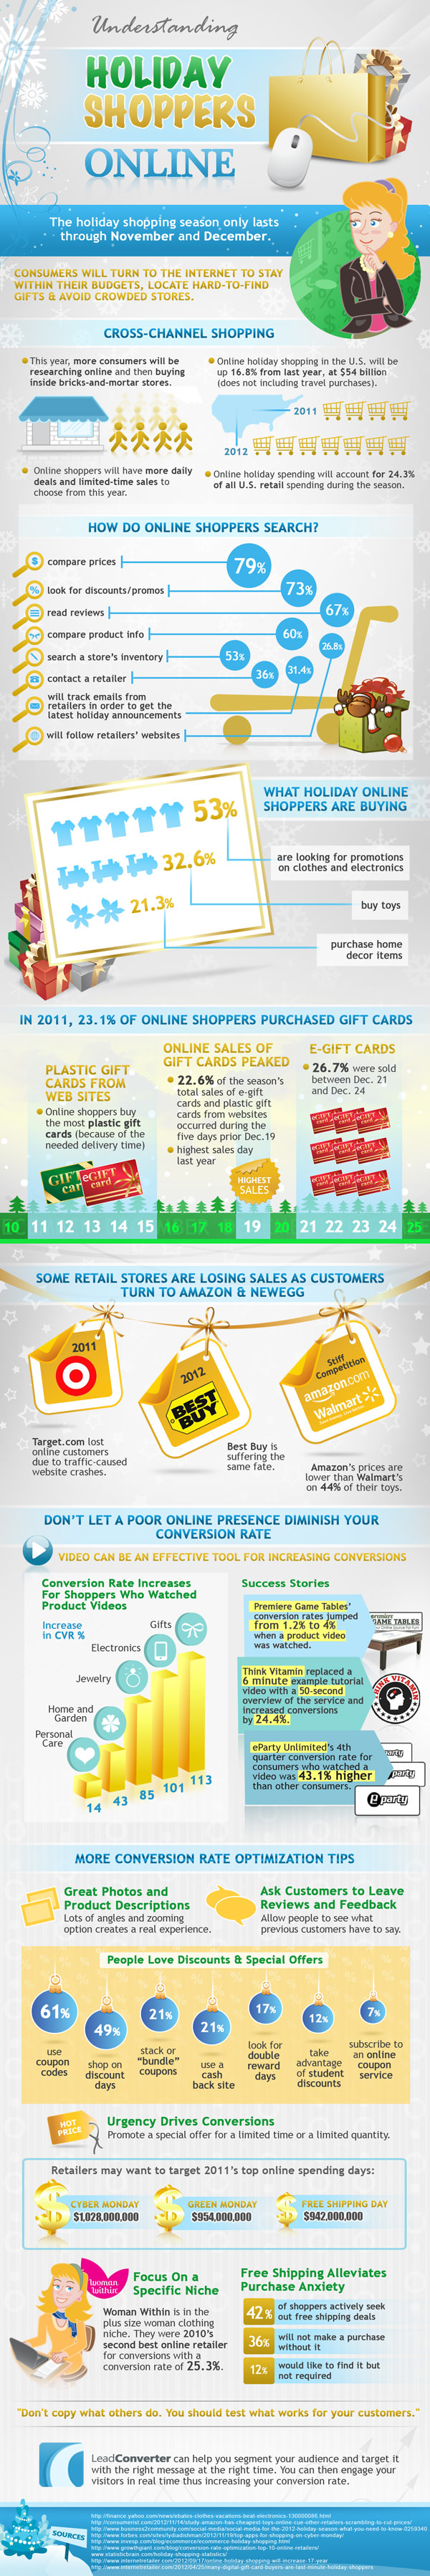 Online_Holiday_Shoppers_Behavior_600px